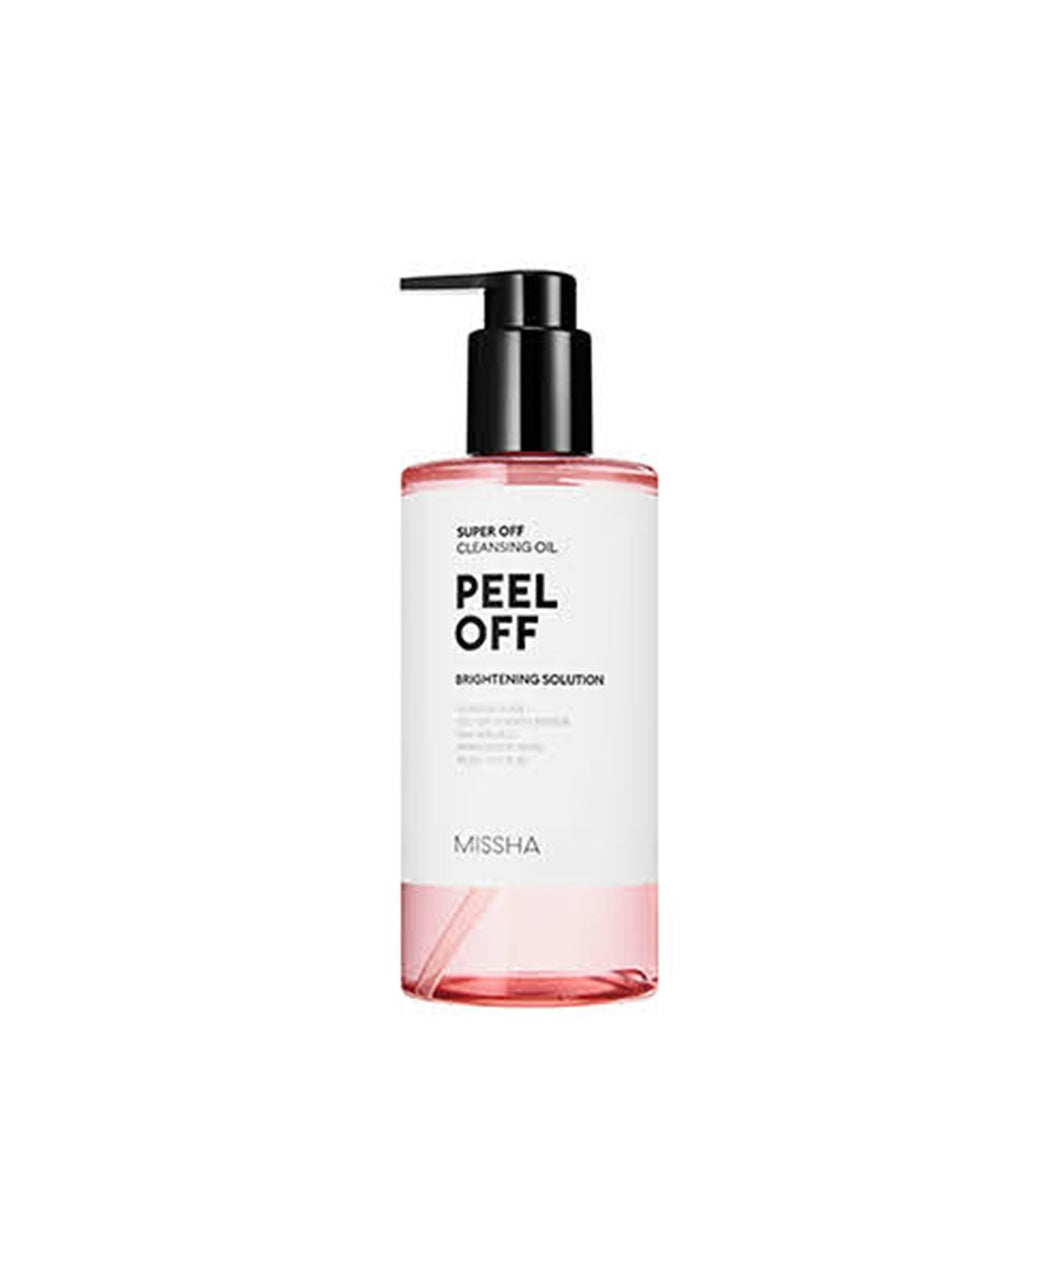 Super off Cleansing Oil: Peel Off